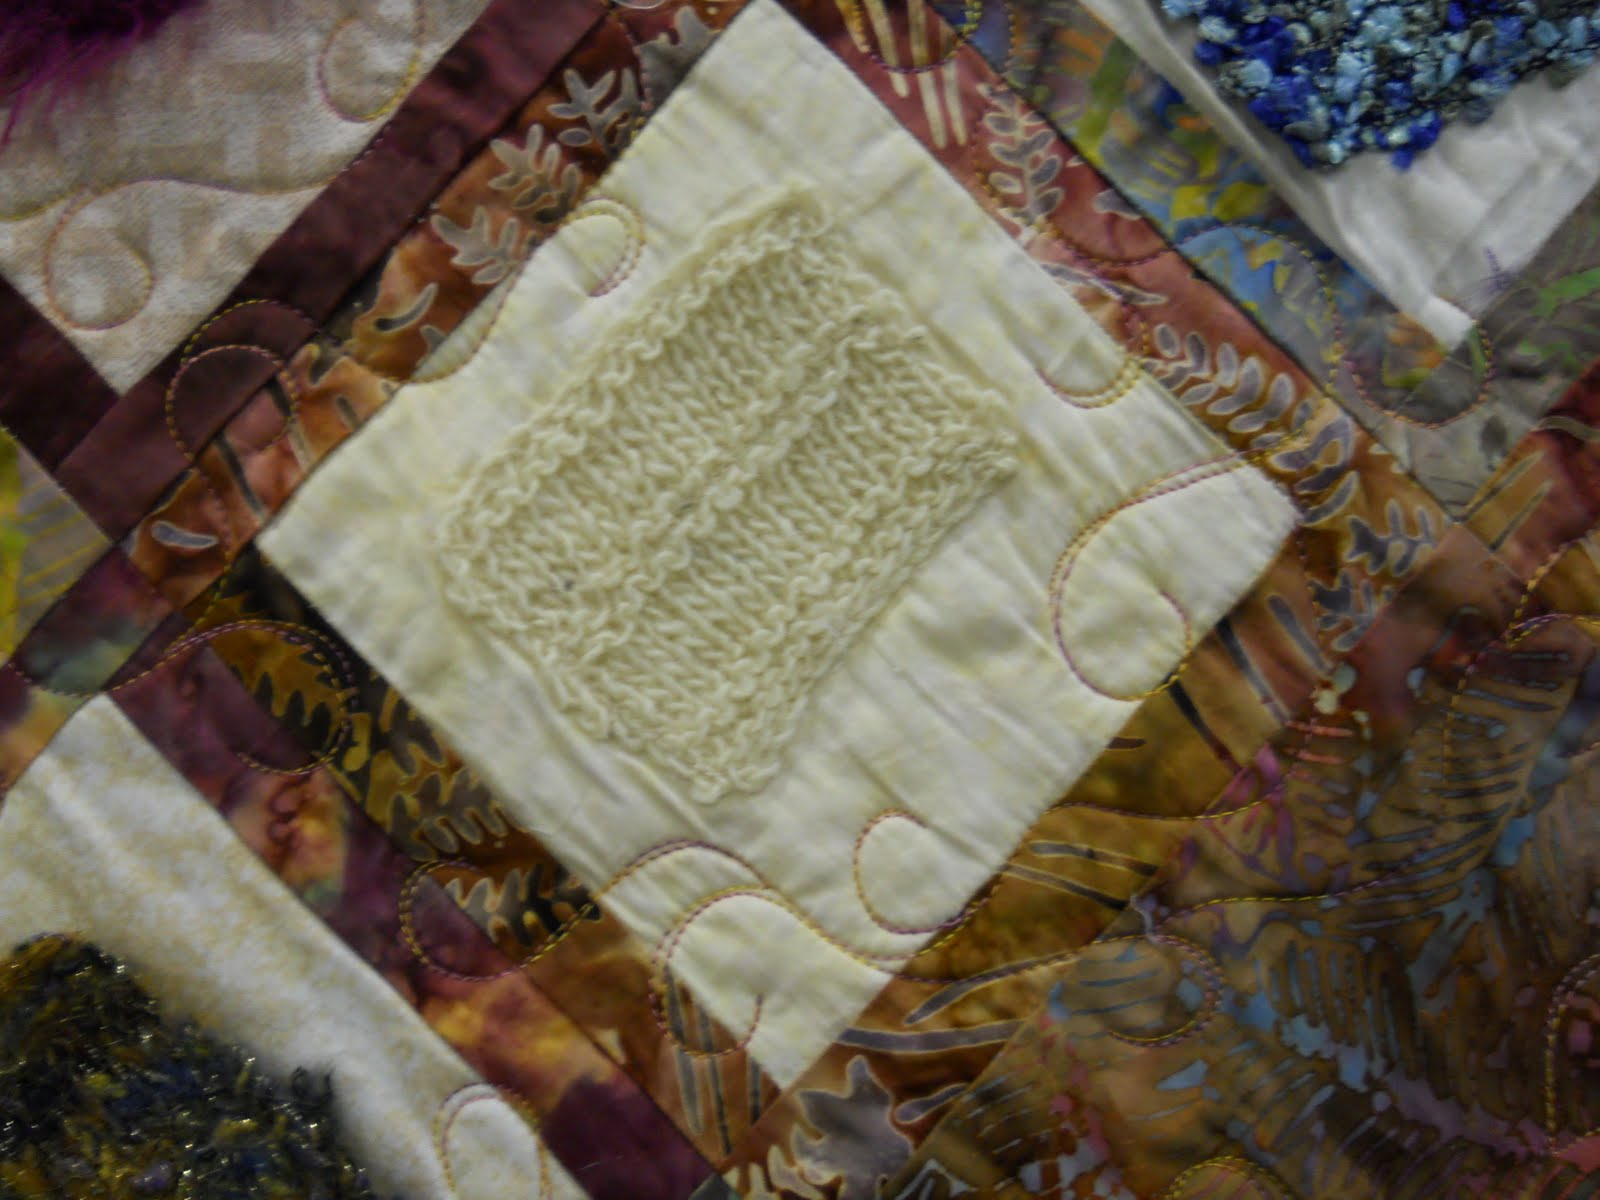 Knitted Quilt Block Patterns : Celtic Heart Knitting and Quilting: Quilters Unlimited Quilt Show 2010, ...